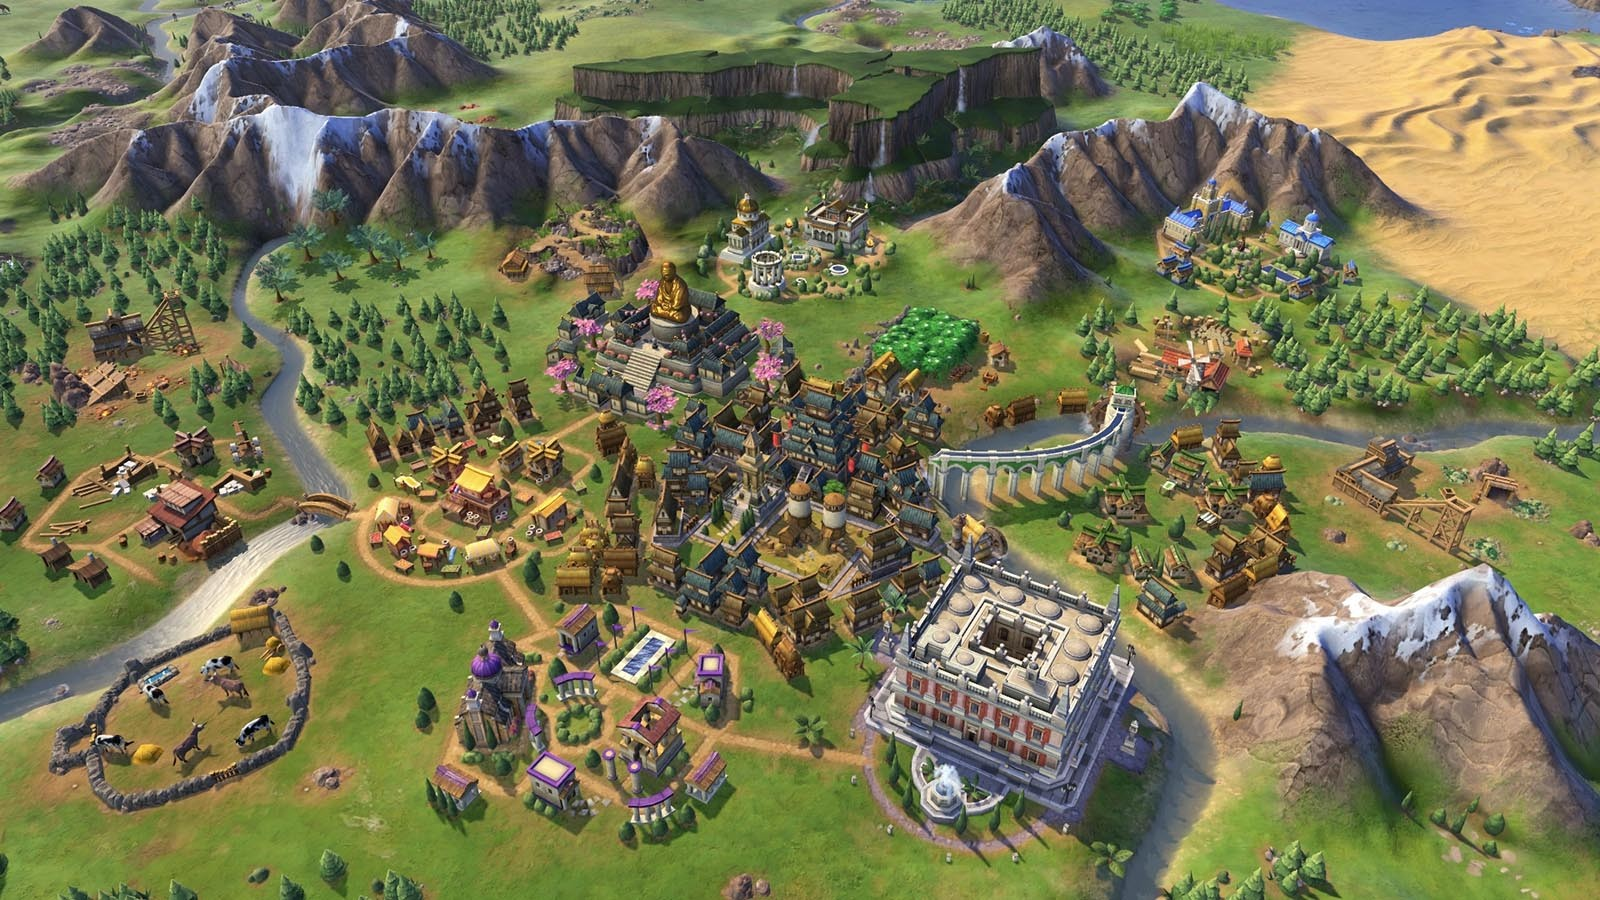 Sid Meier's Civilization VI: Rise and Fall [Steam CD Key] for PC - Buy now